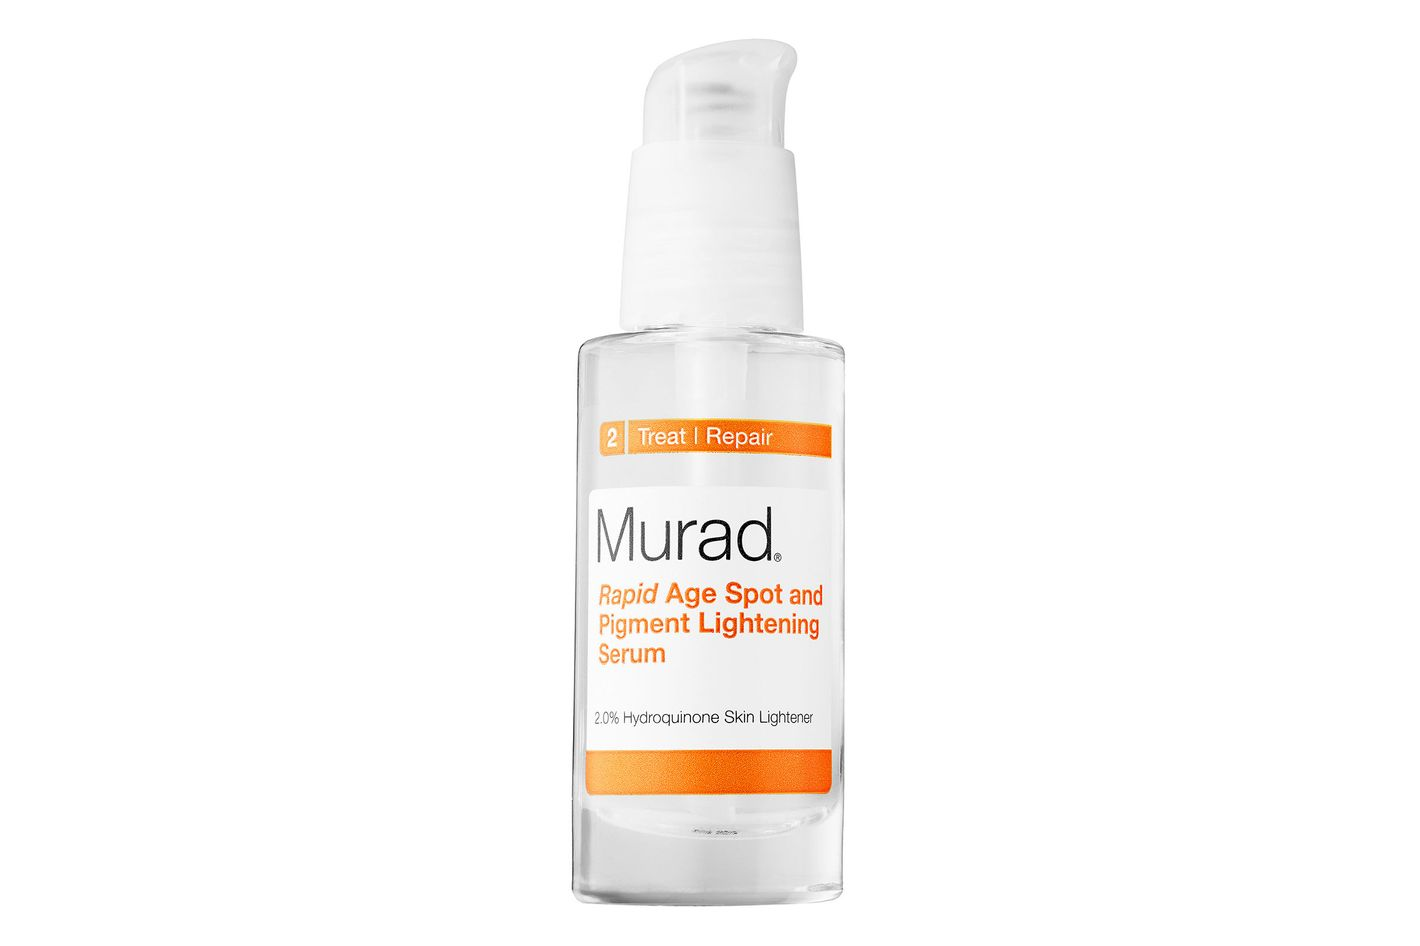 Murad Environmental Shield Age Spot and Pigment Lightening Serum